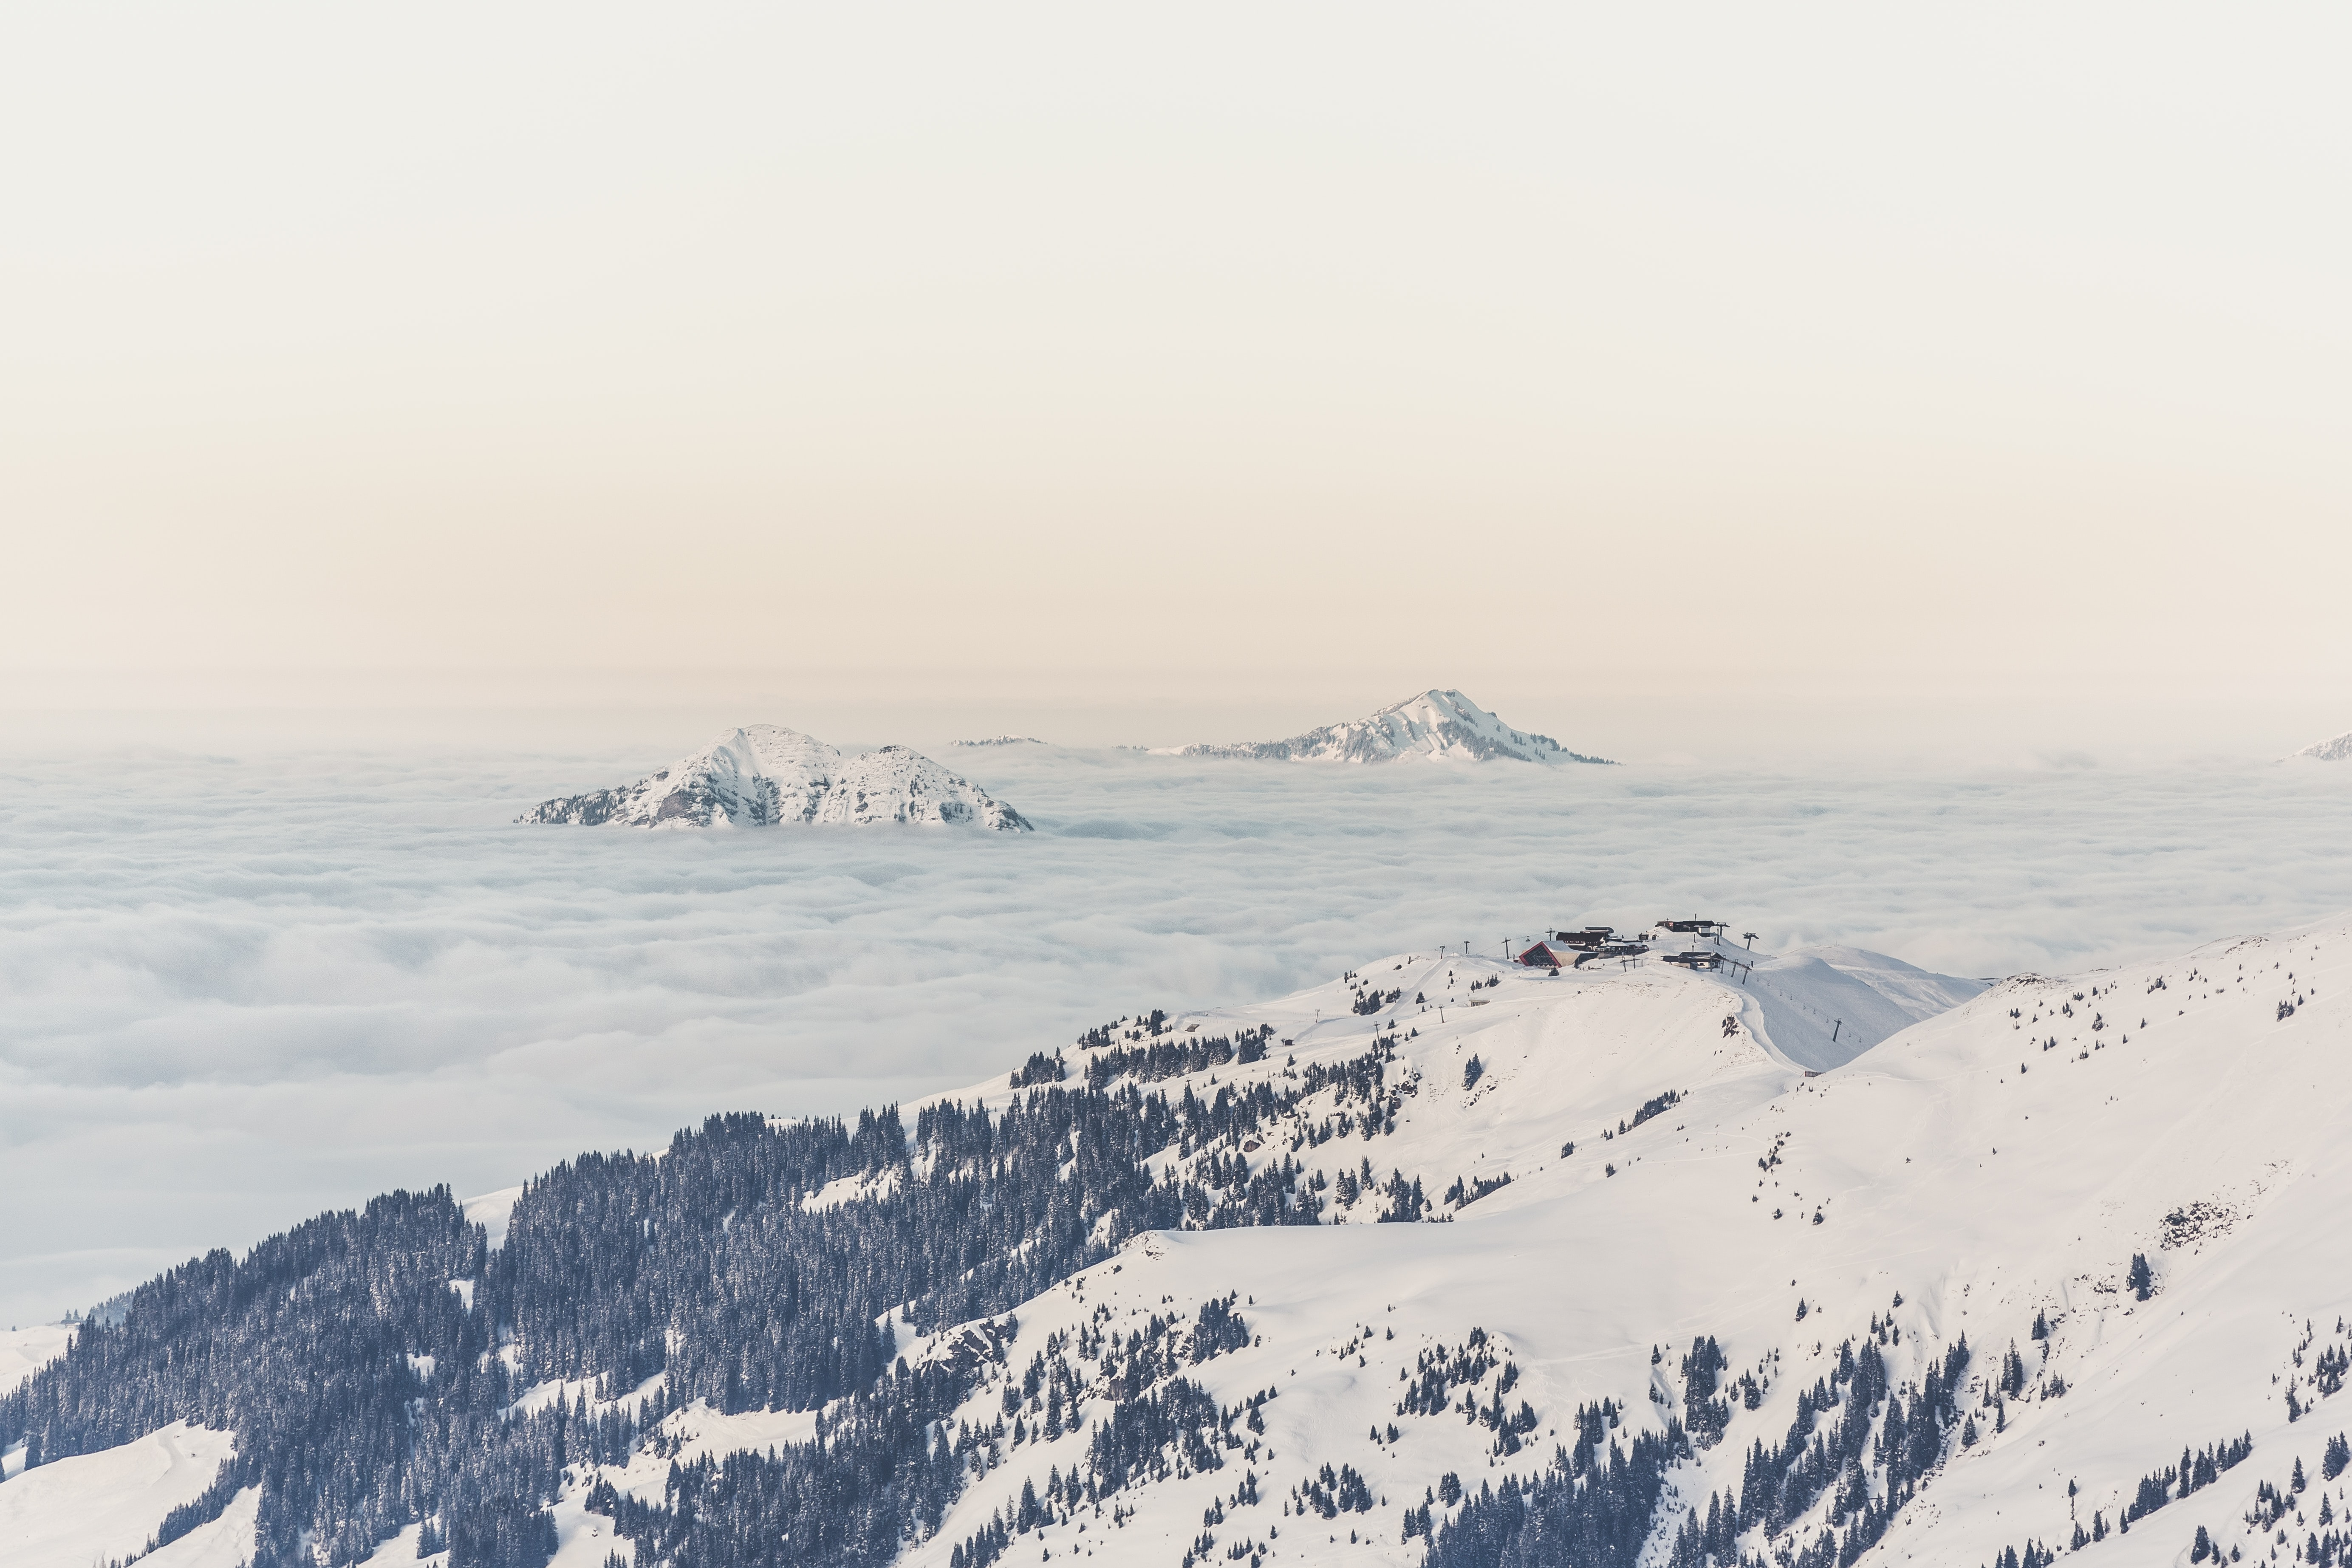 View of Snowy mountain peaks of the Kitzbühel Alps amongst the clouds from the Hahnenkammbahn cable car